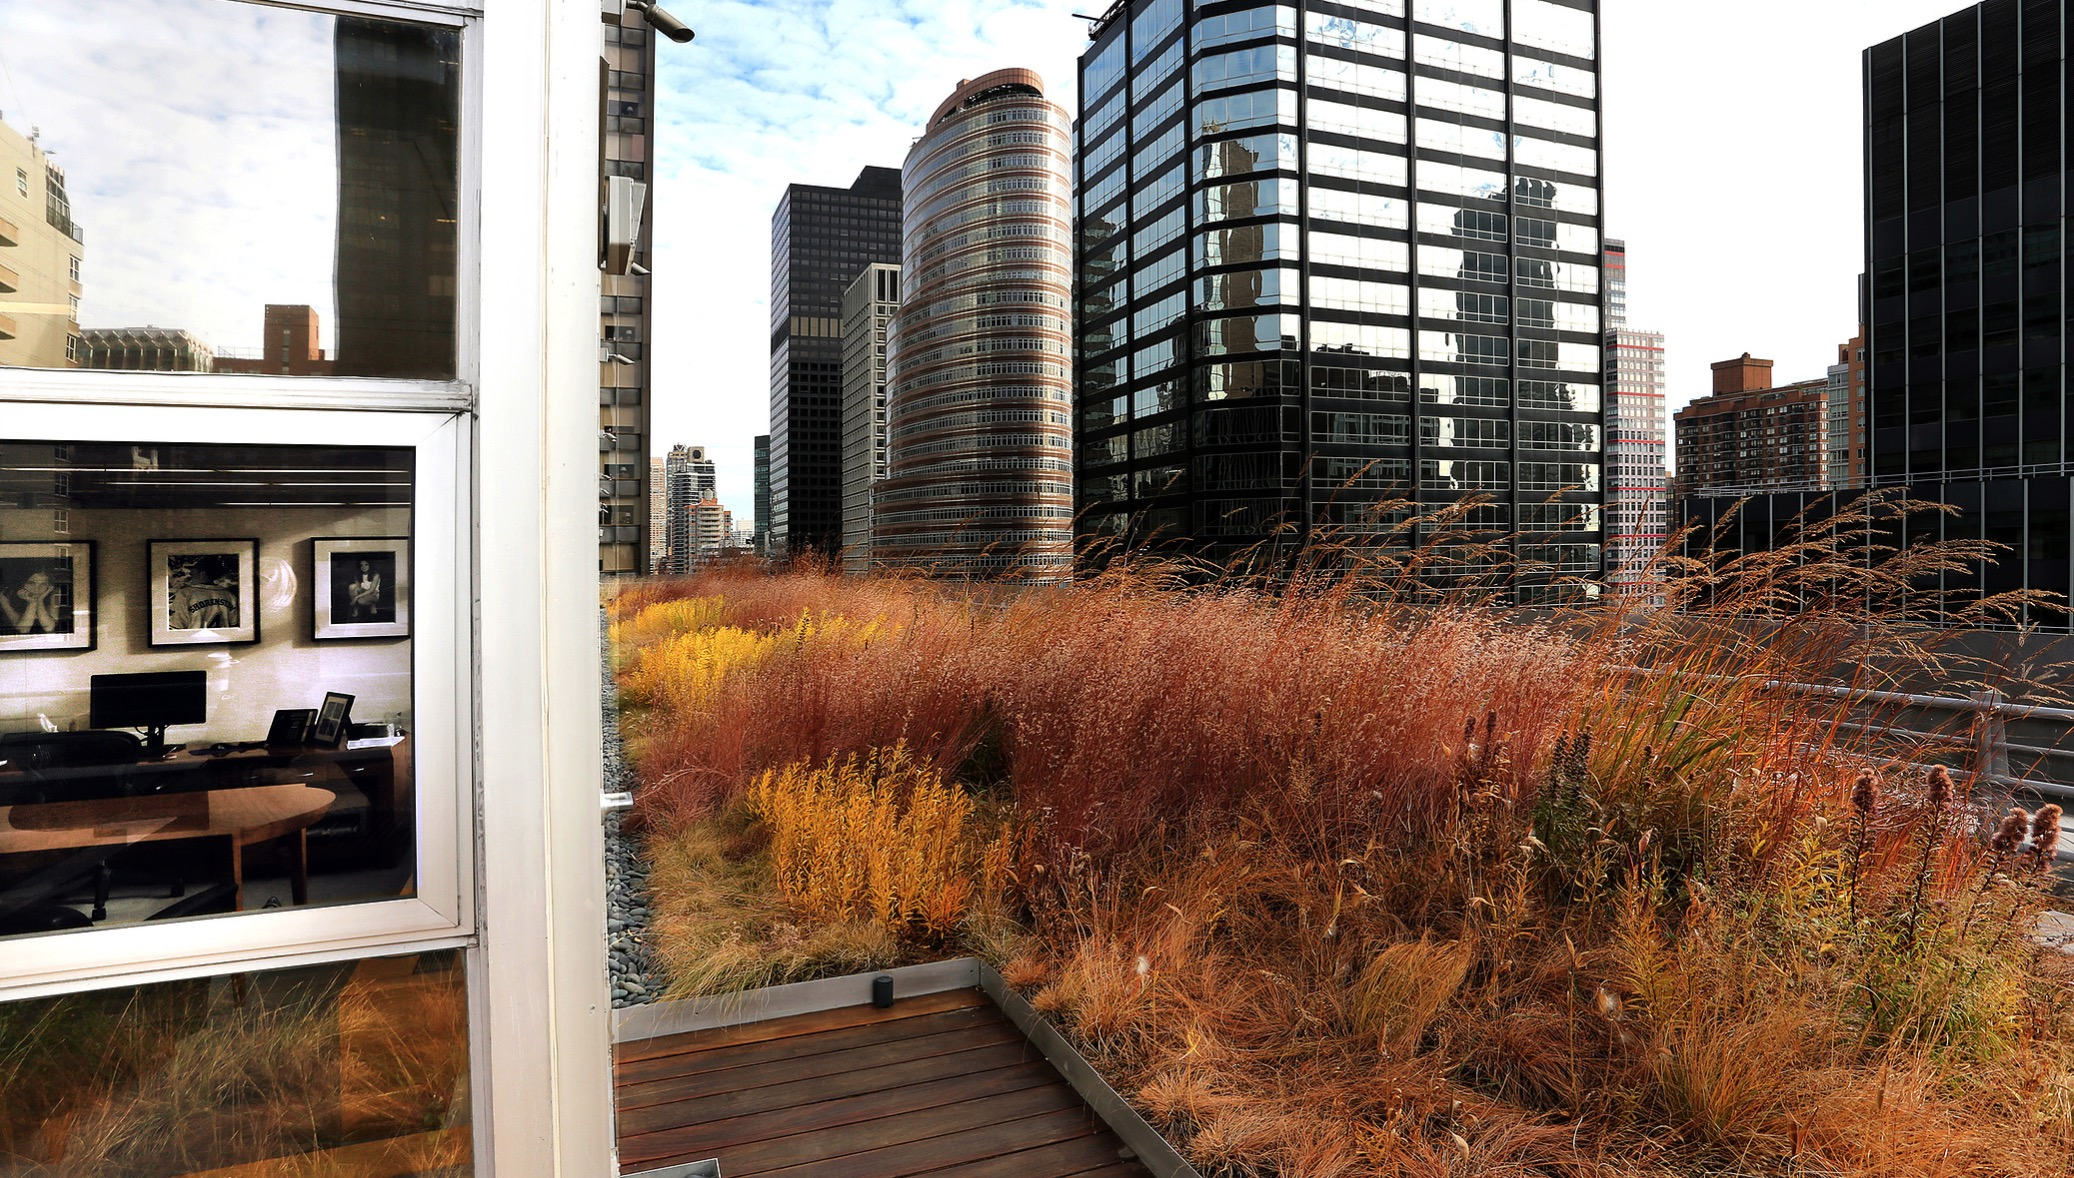 Green Roof_Autumn Fall_Midtown Manhattan